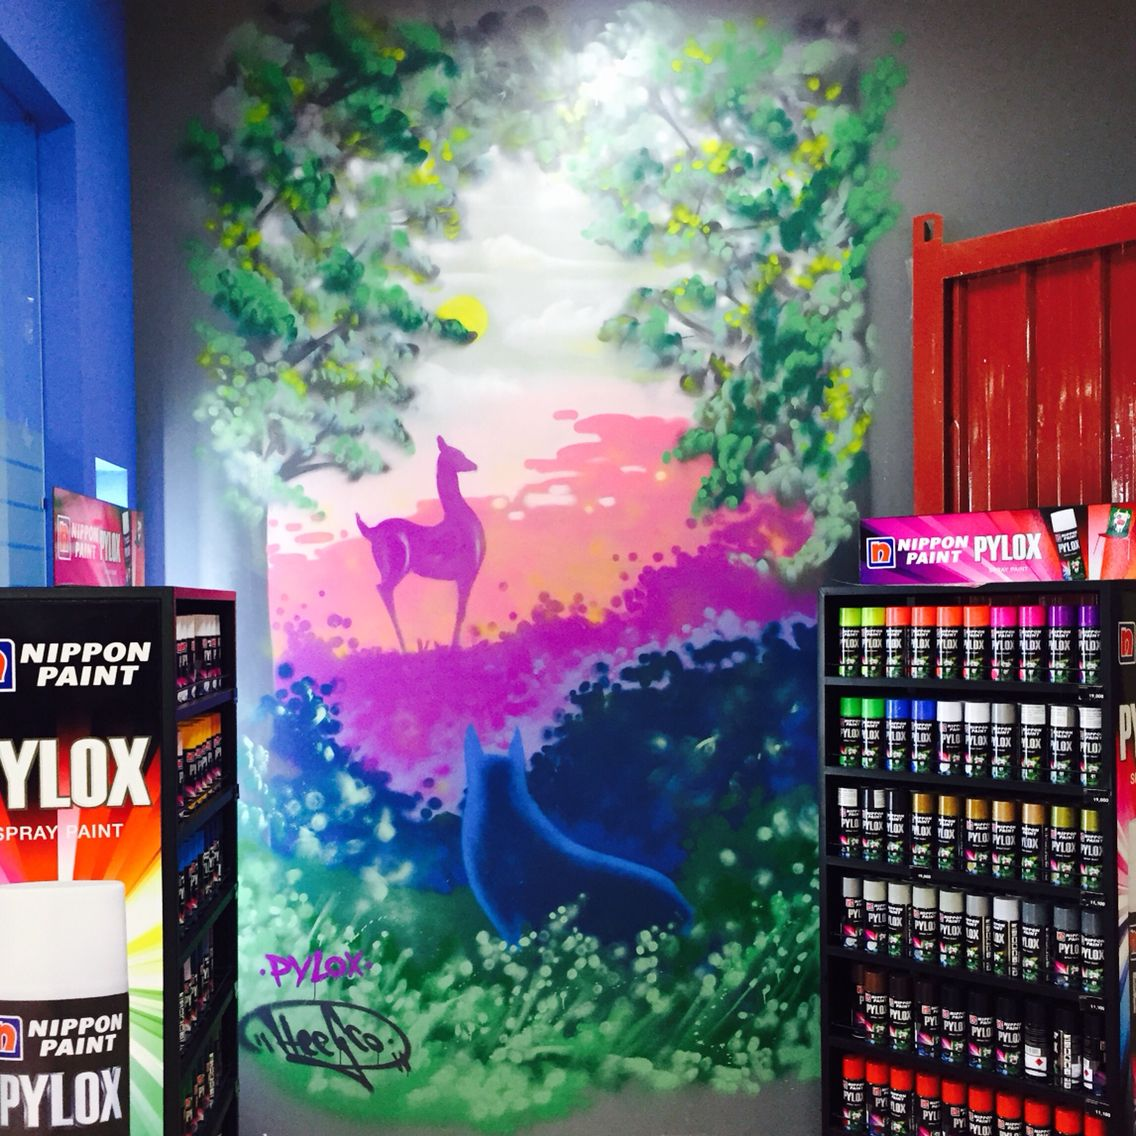 Wall Decoration By Pylox Spray Paint Diy Project Home Fix